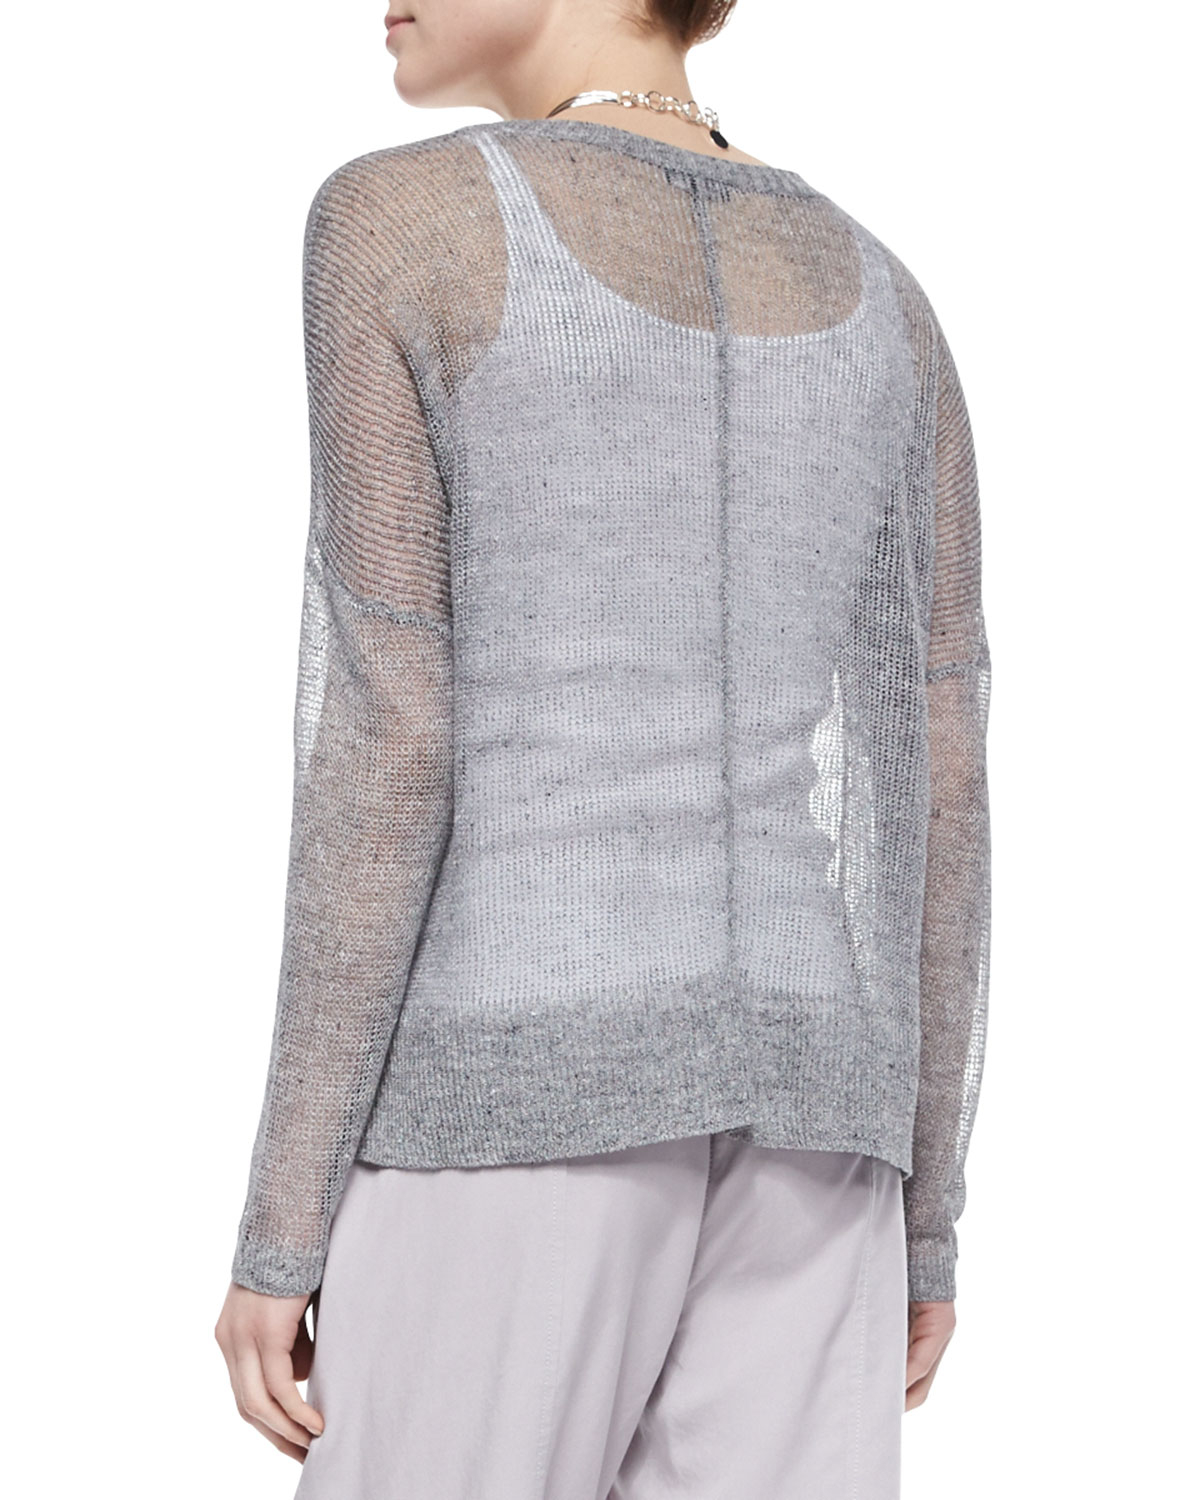 Eileen fisher Deep-V-Neck Rustic Sheer Cardigan in Gray | Lyst